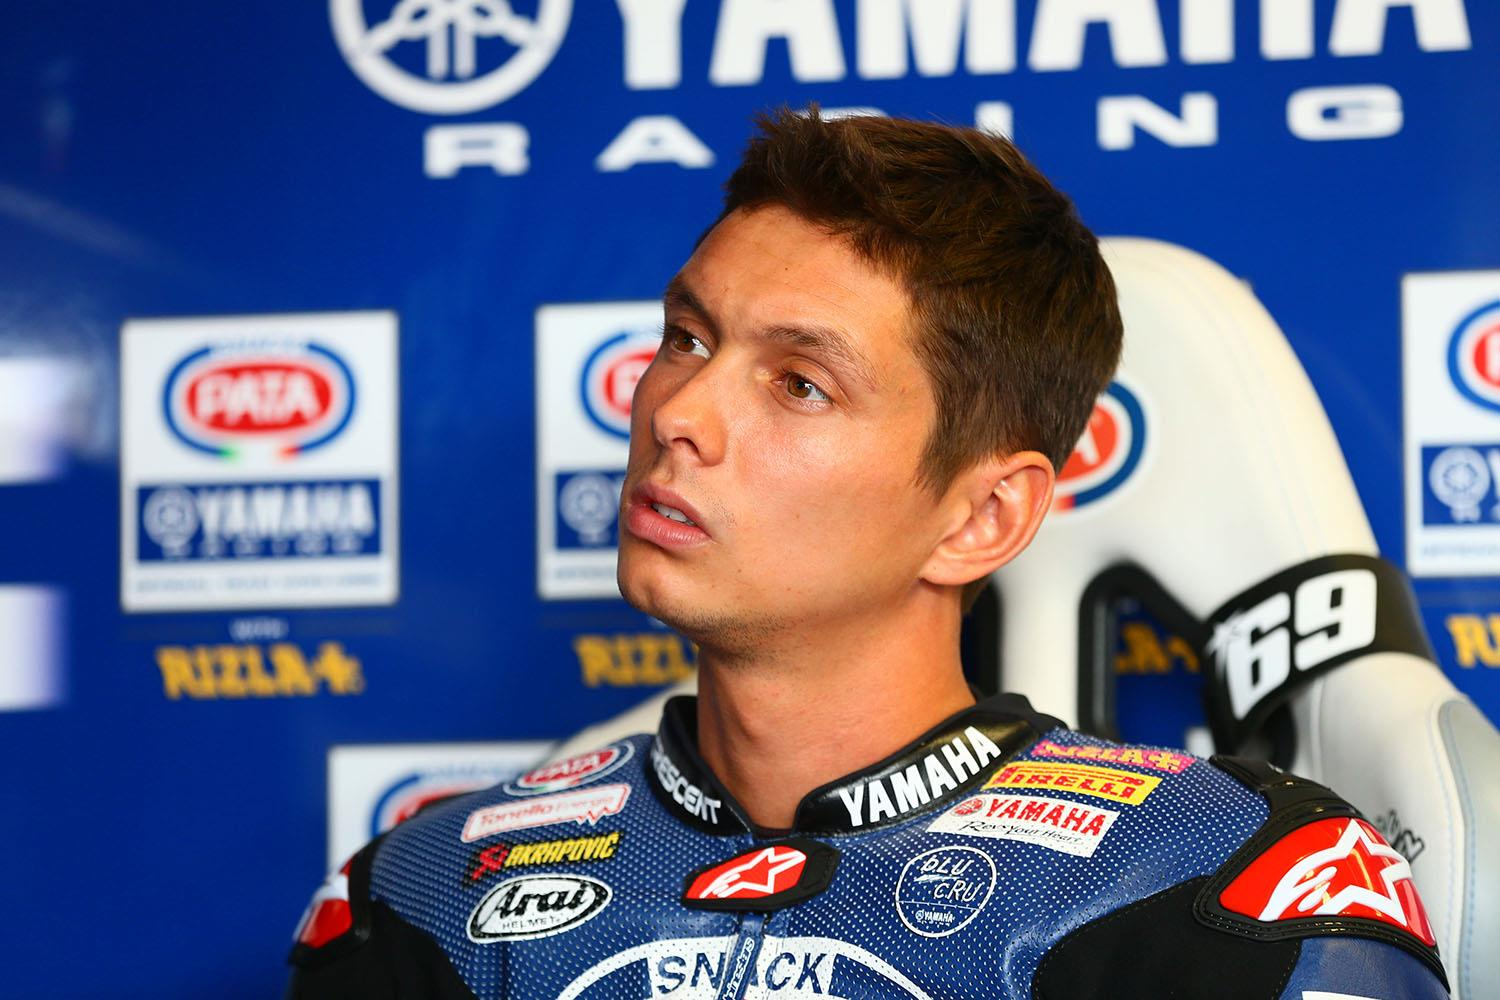 Motorcycling: Van der Mark in for Rossi at Aragon